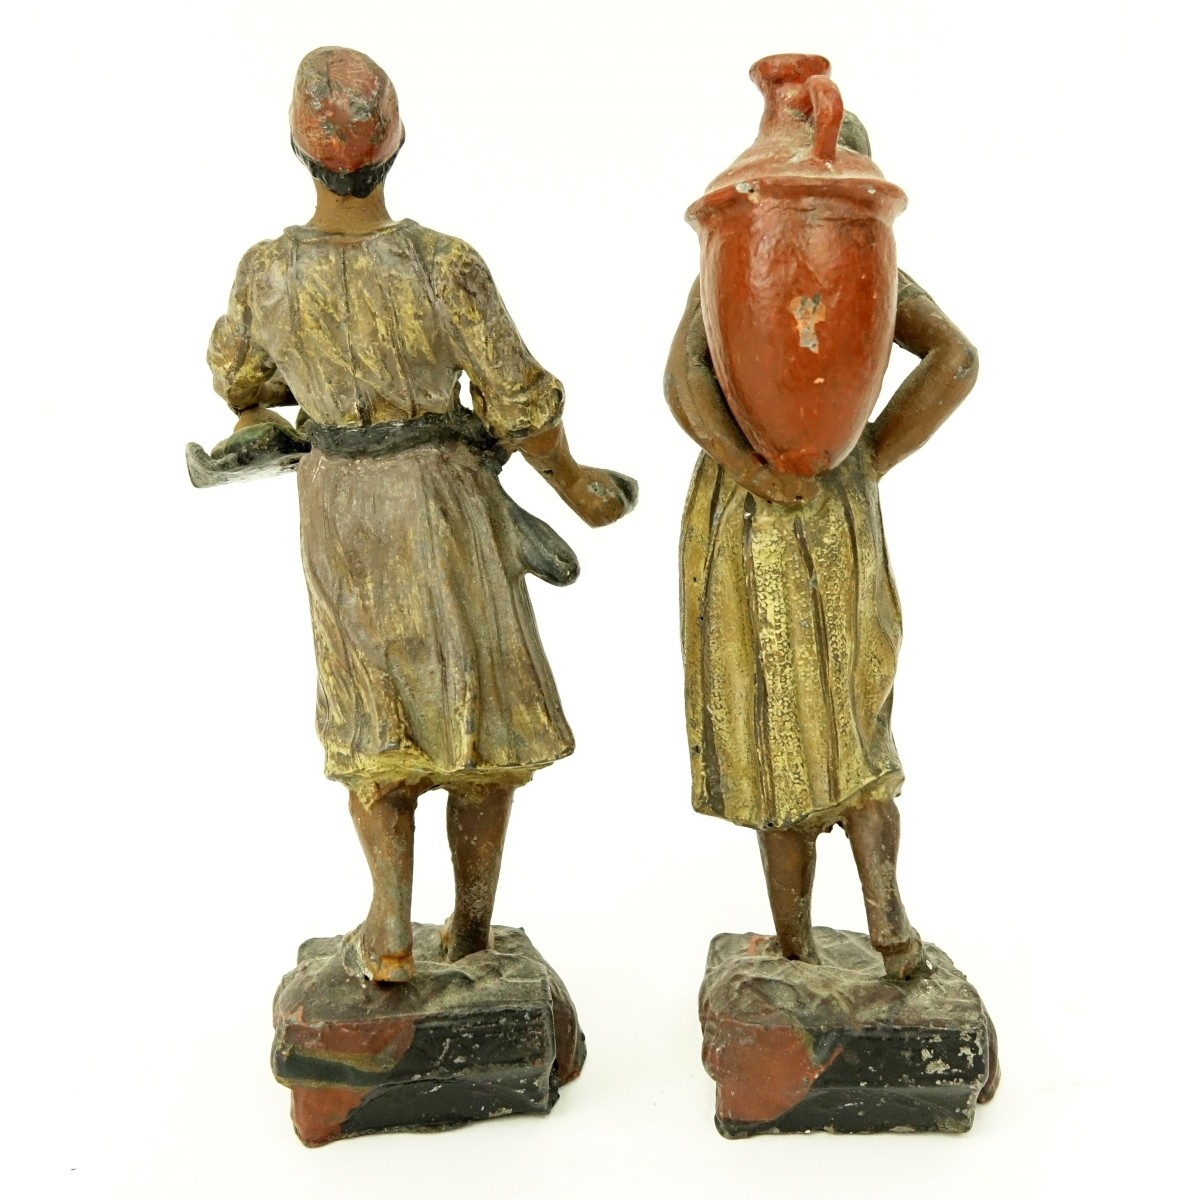 Pair of French Polychrome Spelter Figures